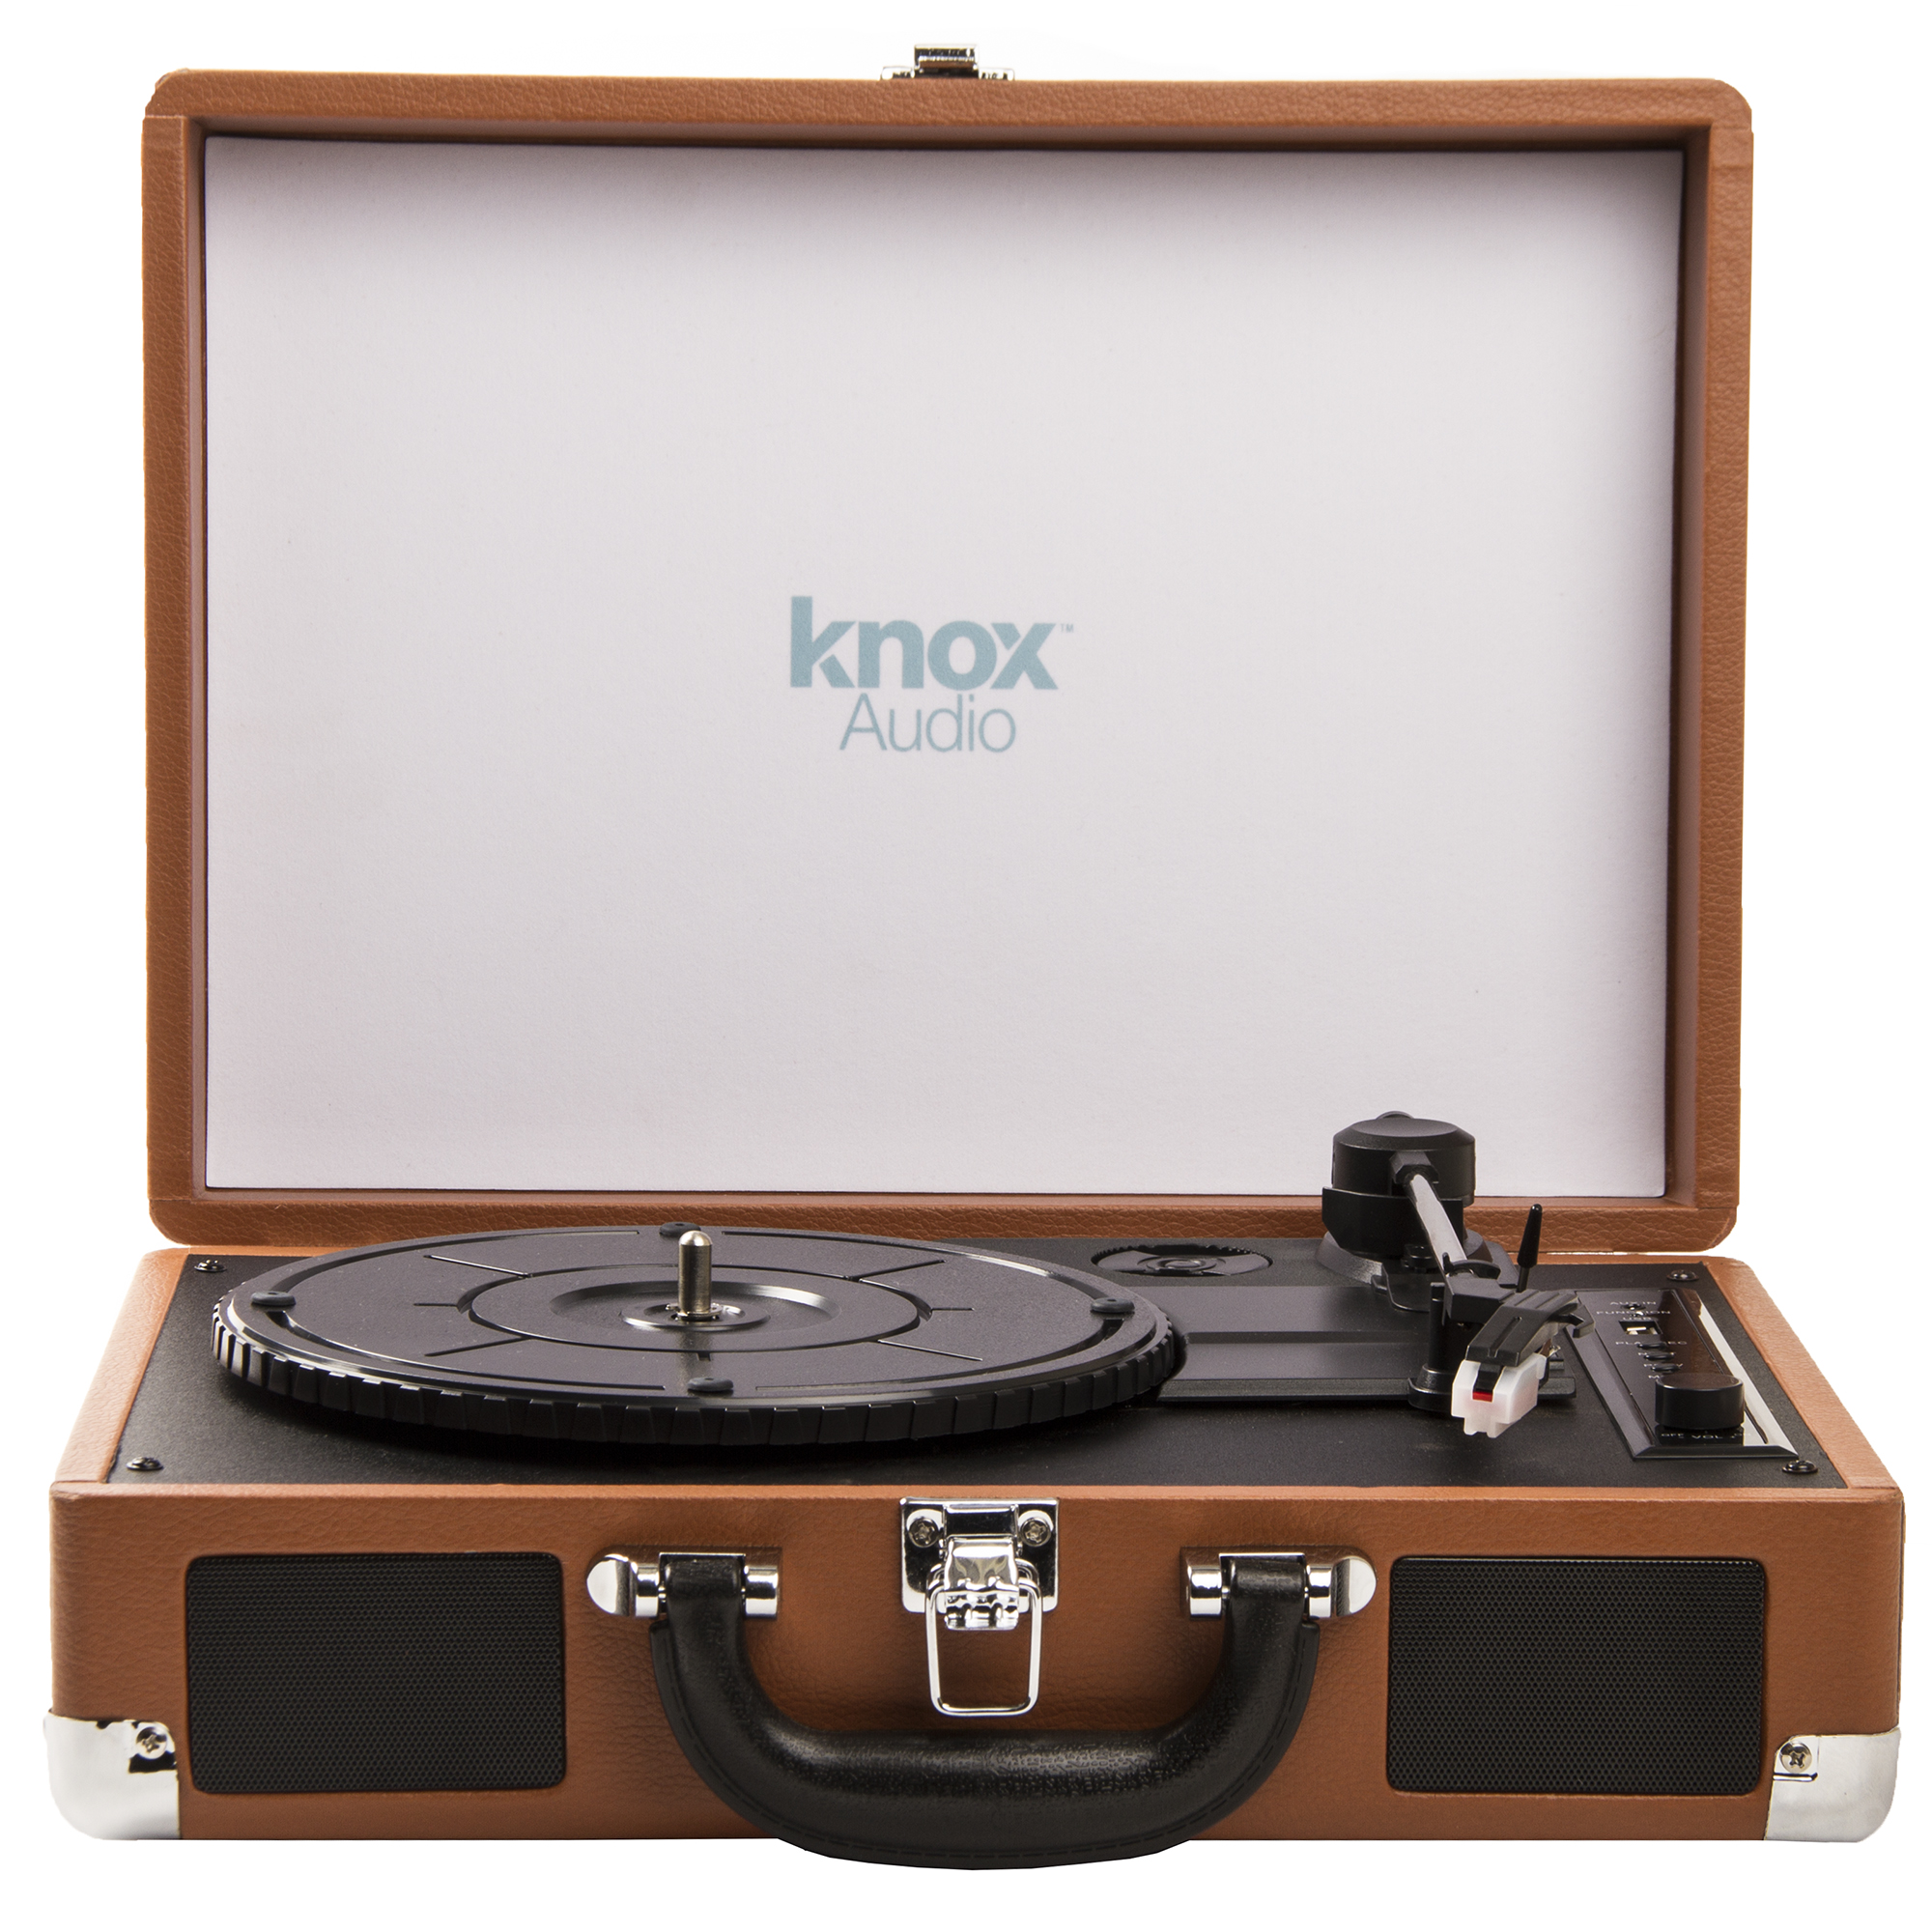 Knox Gear Portable Bluetooth USB Turntable with Built-in Speakers (Brown) by Knox